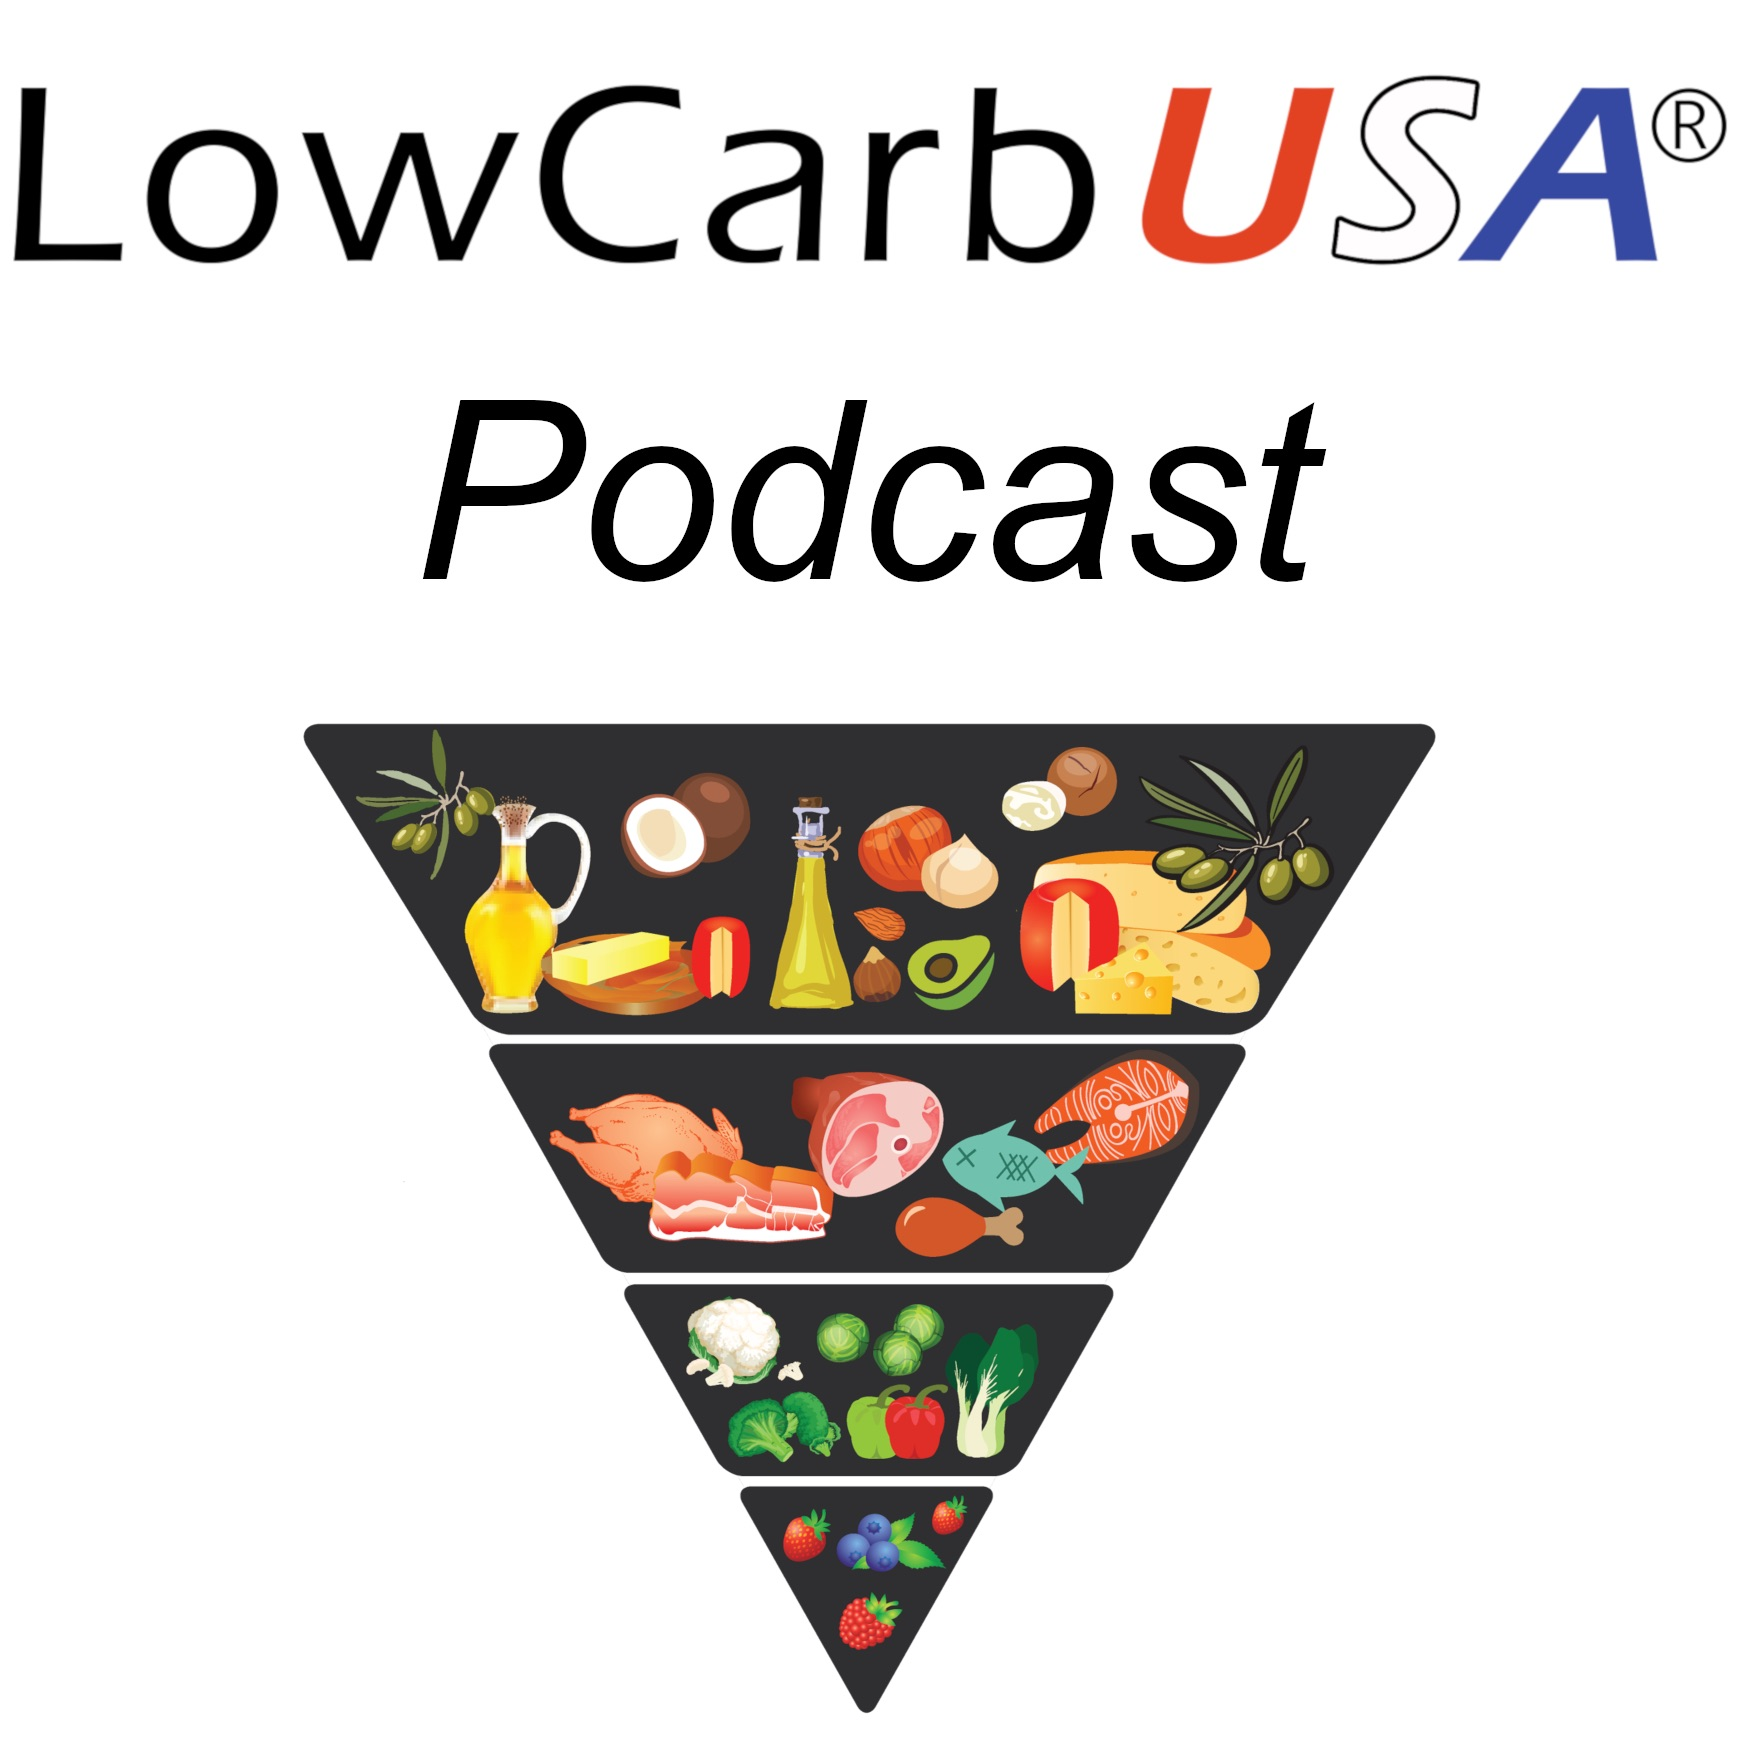 LowCarbUSA Podcast show art